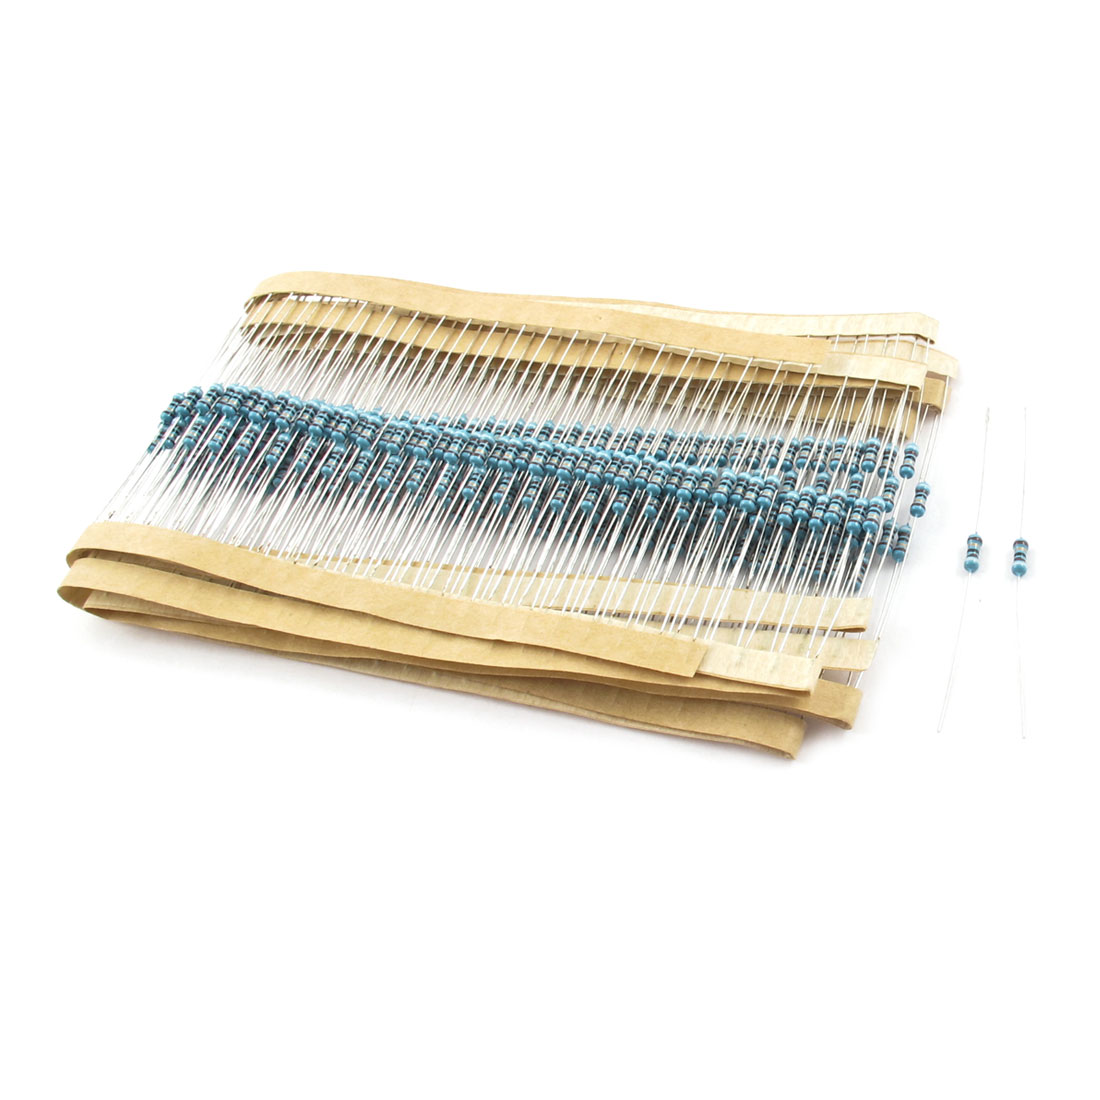 300 Pcs 1/4W 1% 91 Ohm PCB Mounting Axial Lead Type Metal Film Resistor